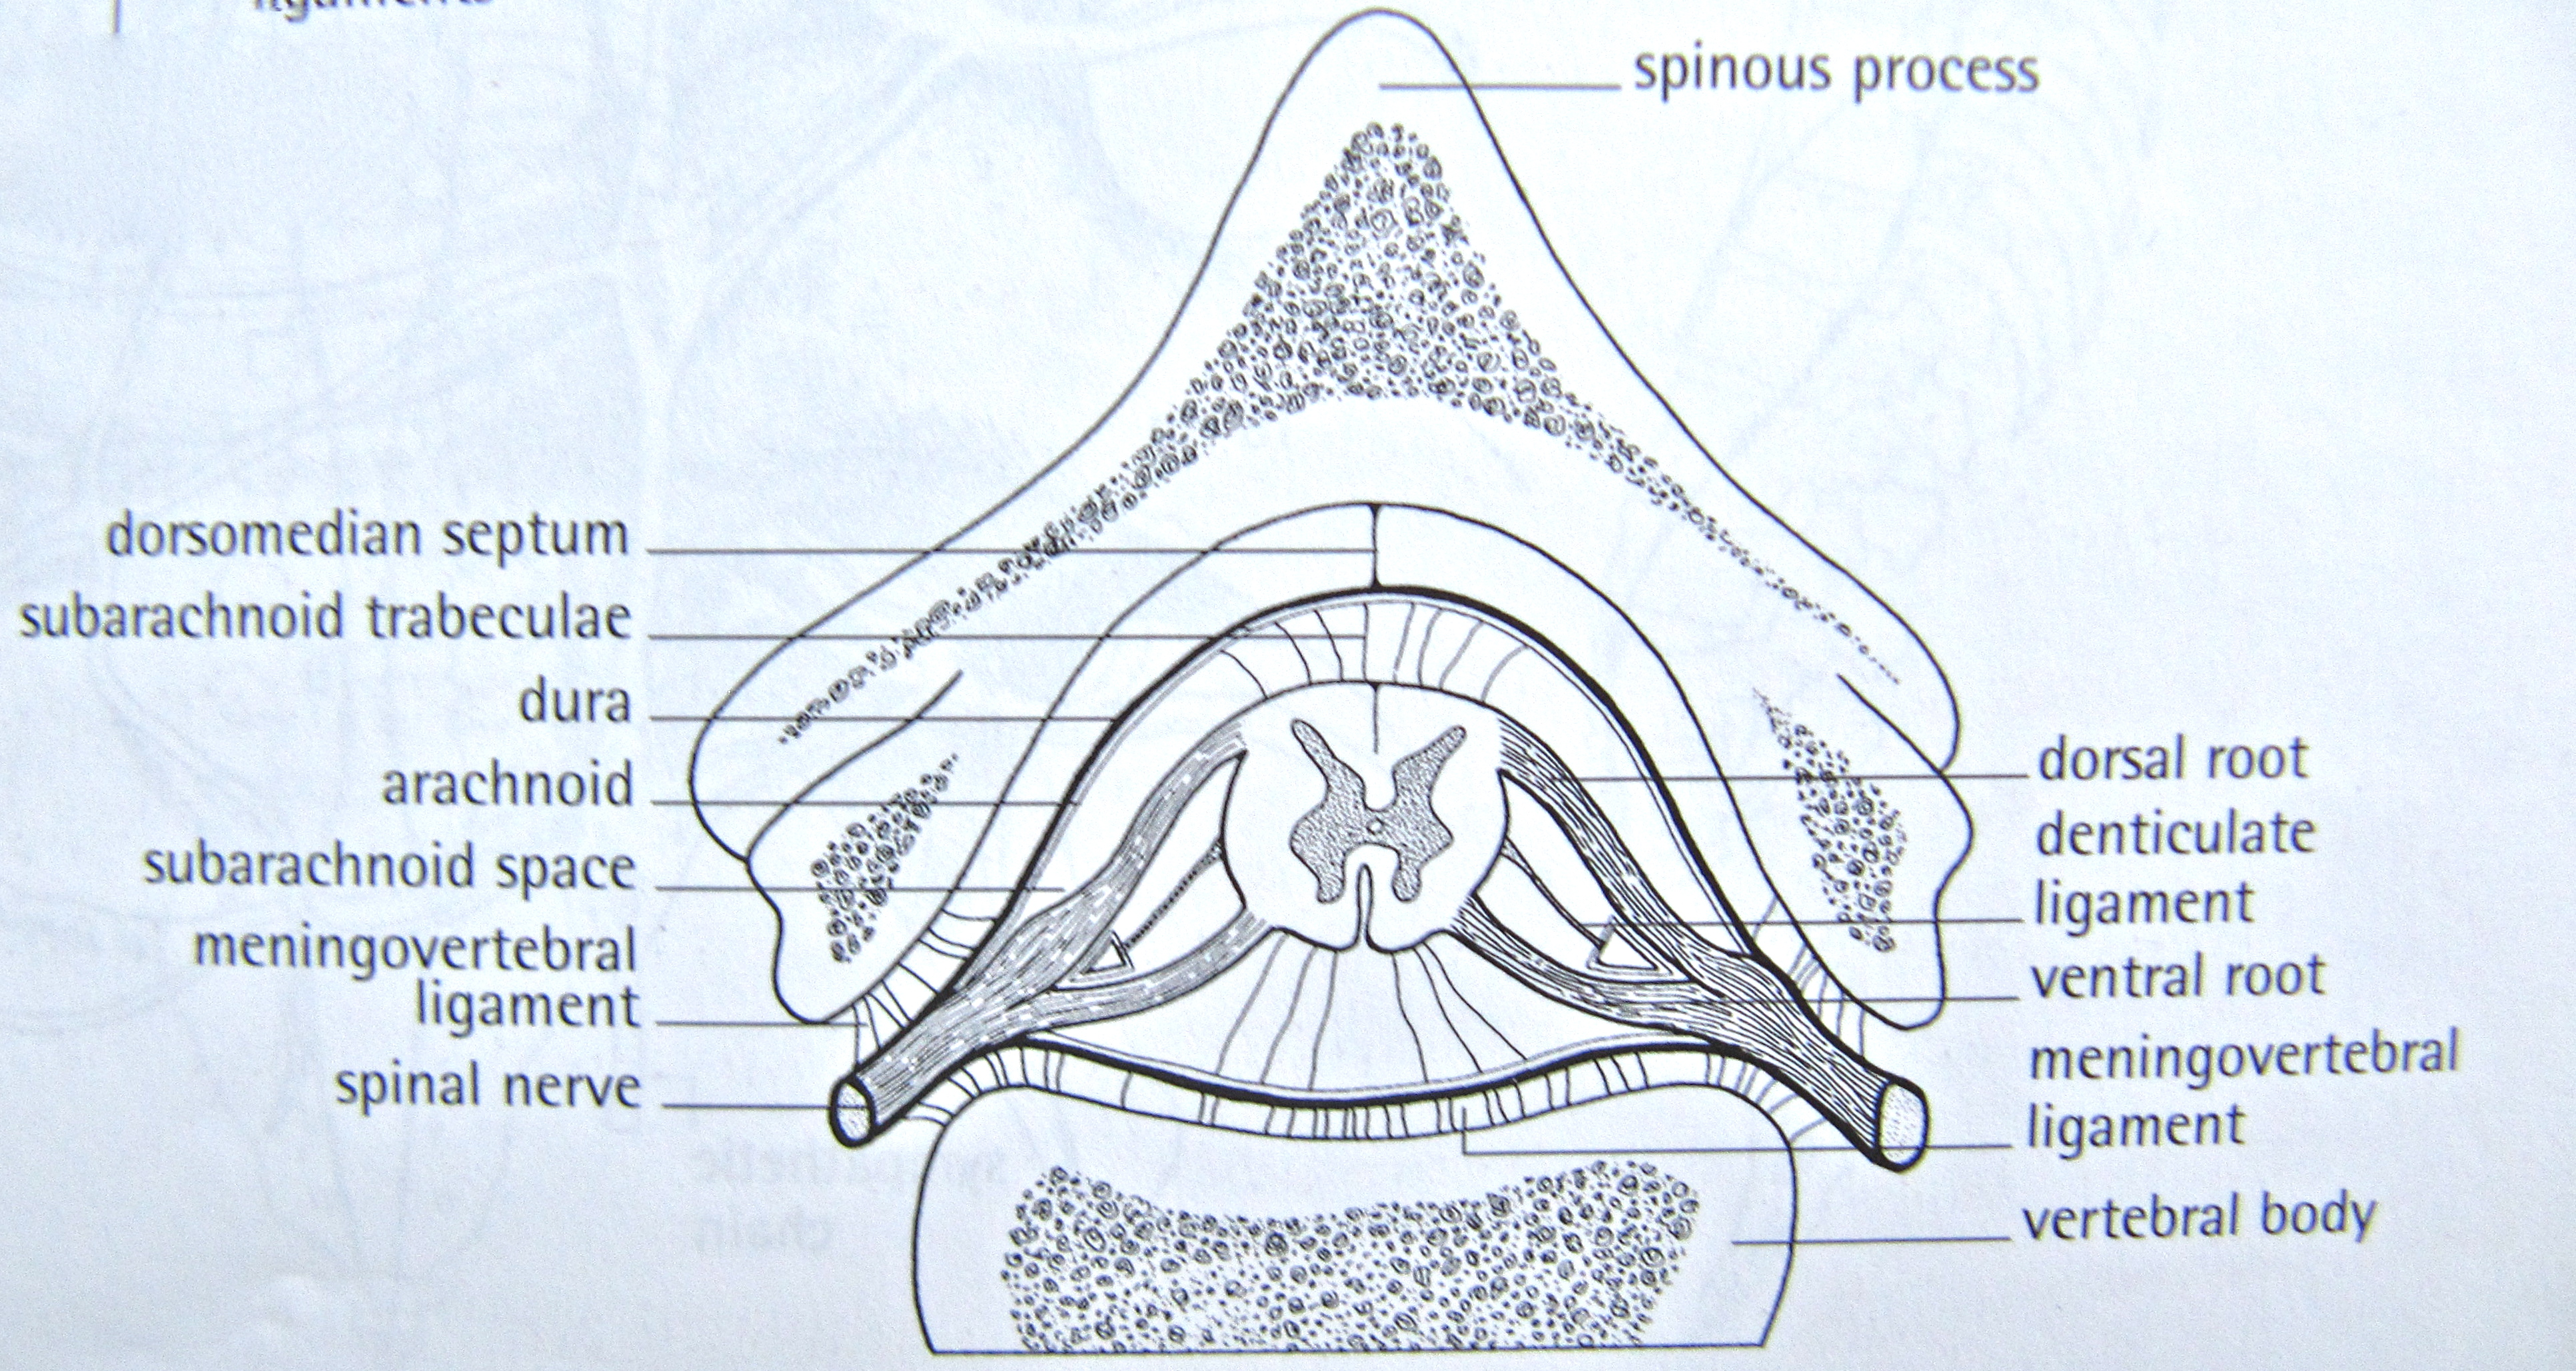 Notes On Anatomy And Physiology The Dorsal Cavity And Its